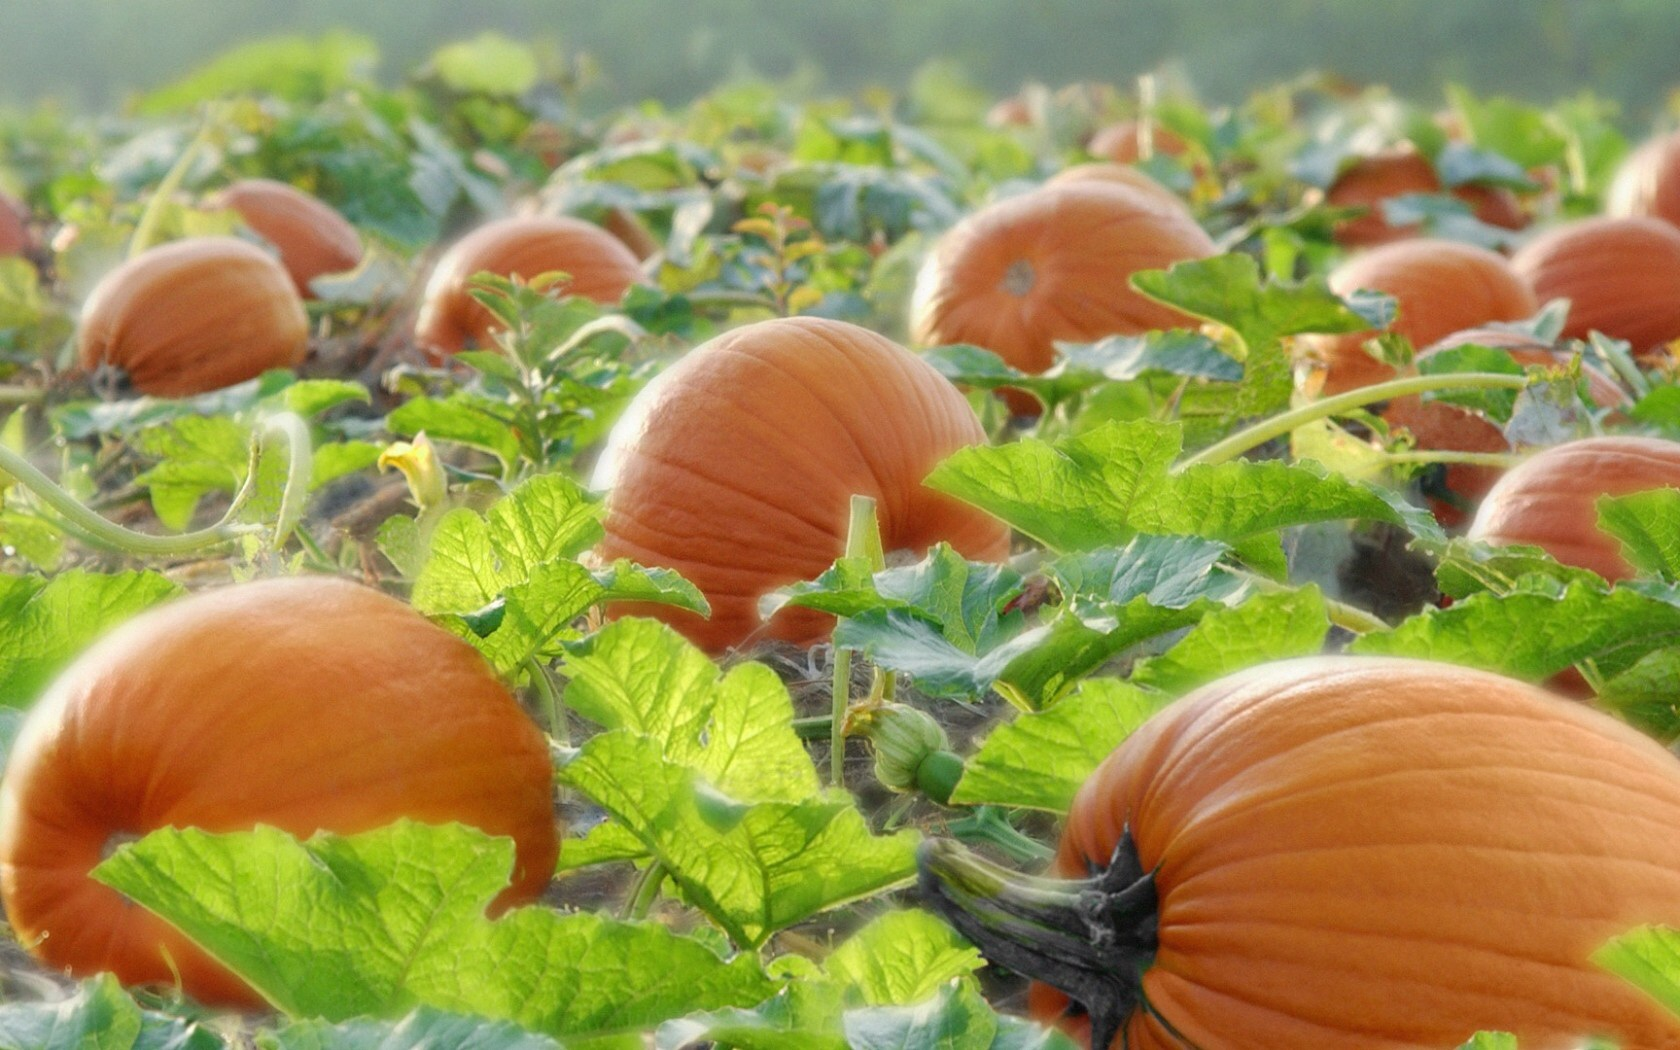 Fall Harvest Iphone Wallpaper Pumpkins On The Field Wallpapers Pumpkins On The Field